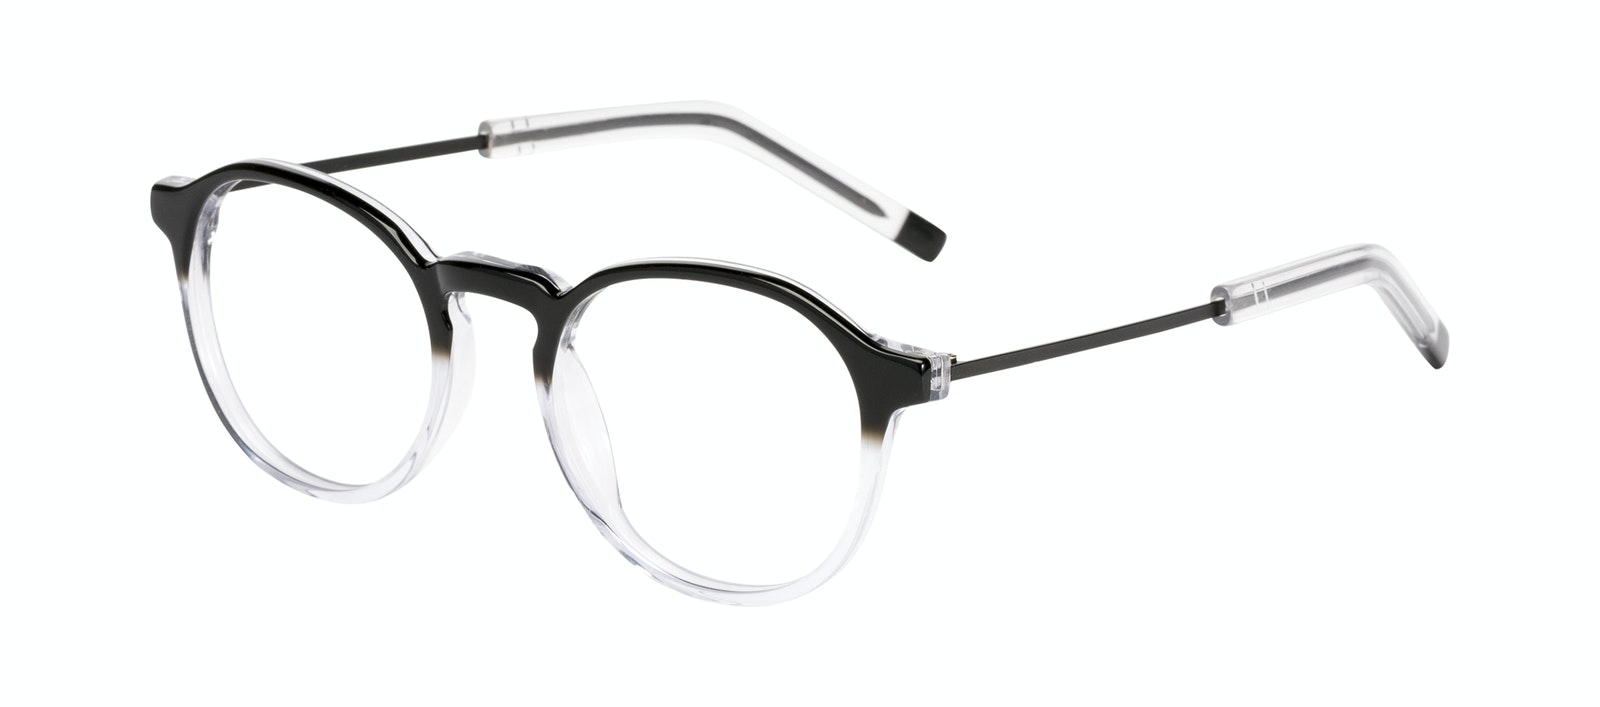 Affordable Fashion Glasses Round Eyeglasses Men Prime Onyx Clear Tilt